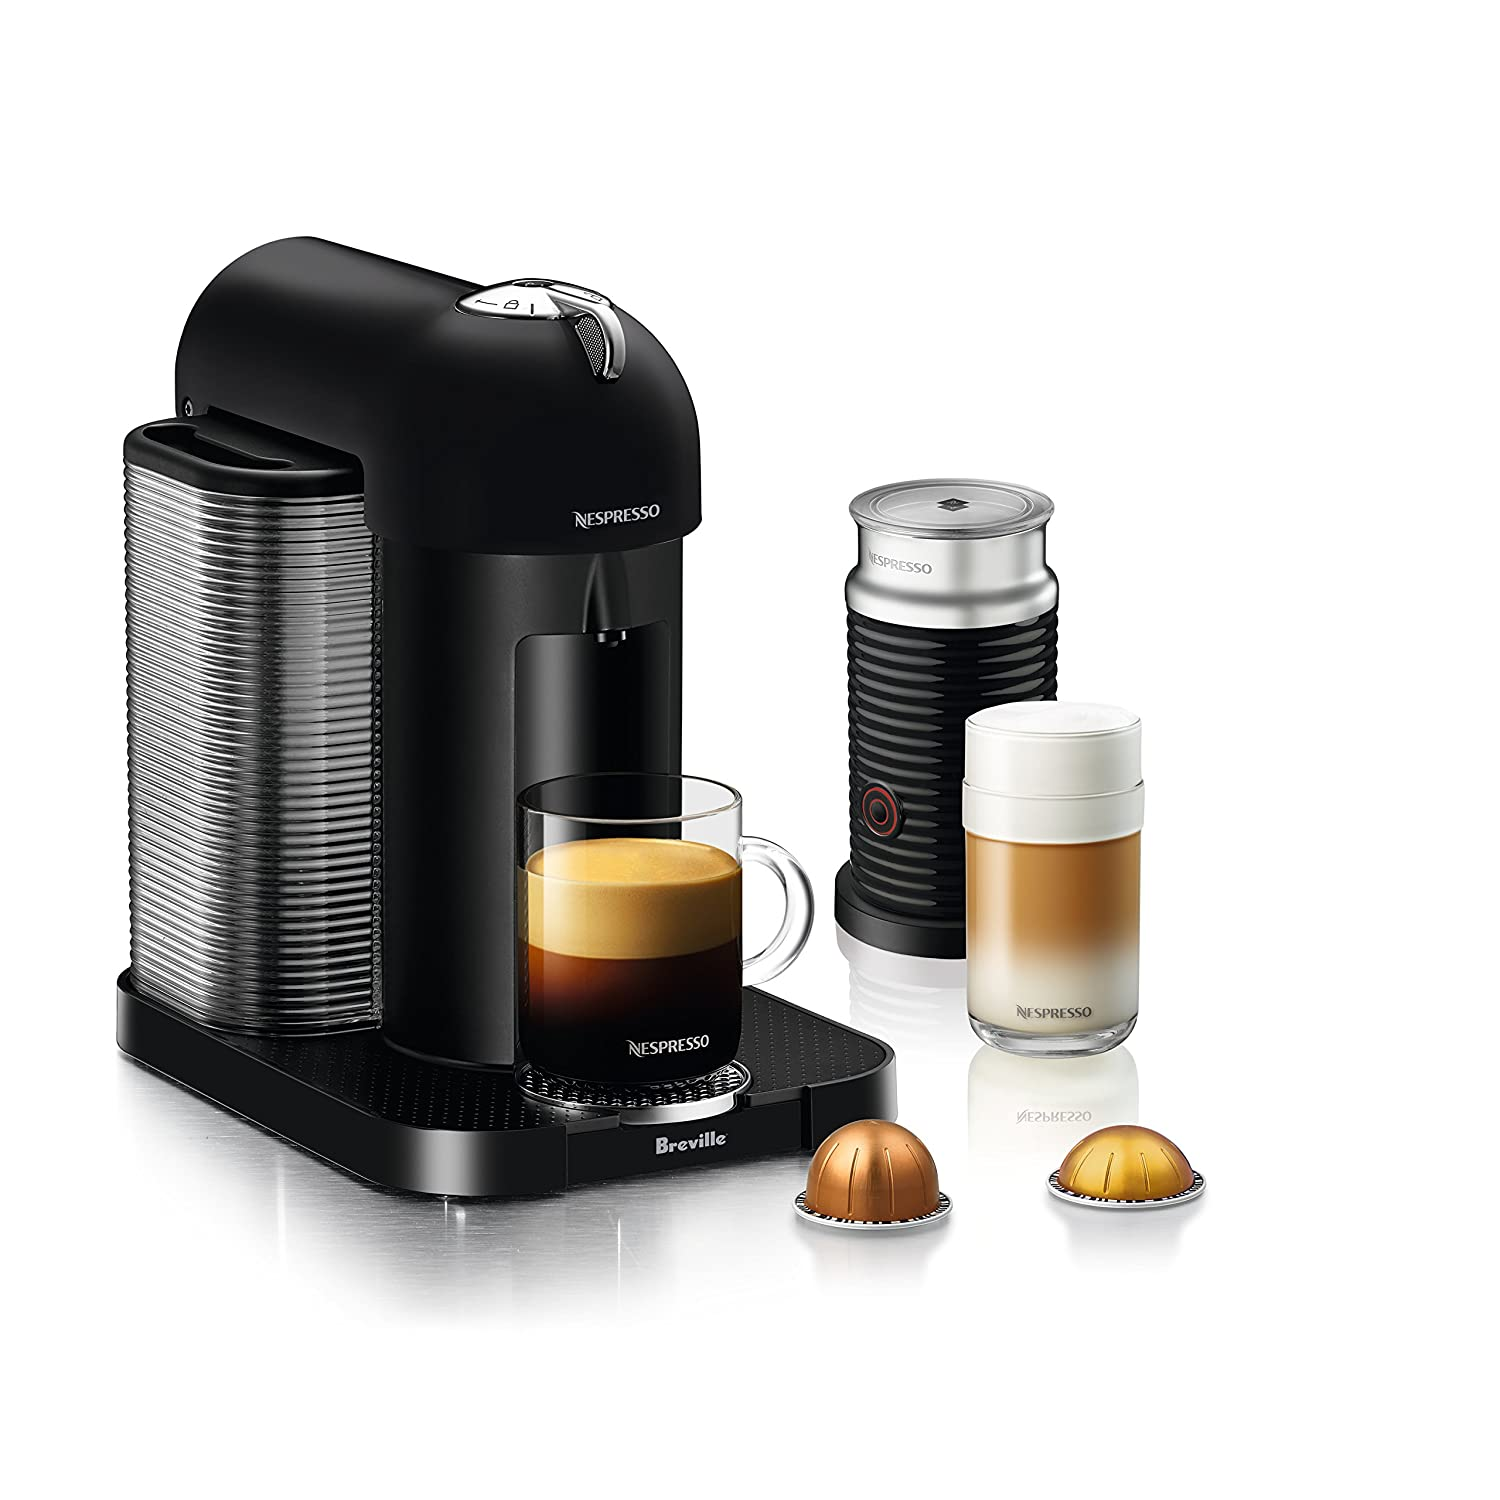 Breville Nespresso Vertuo Espresso Machine Review